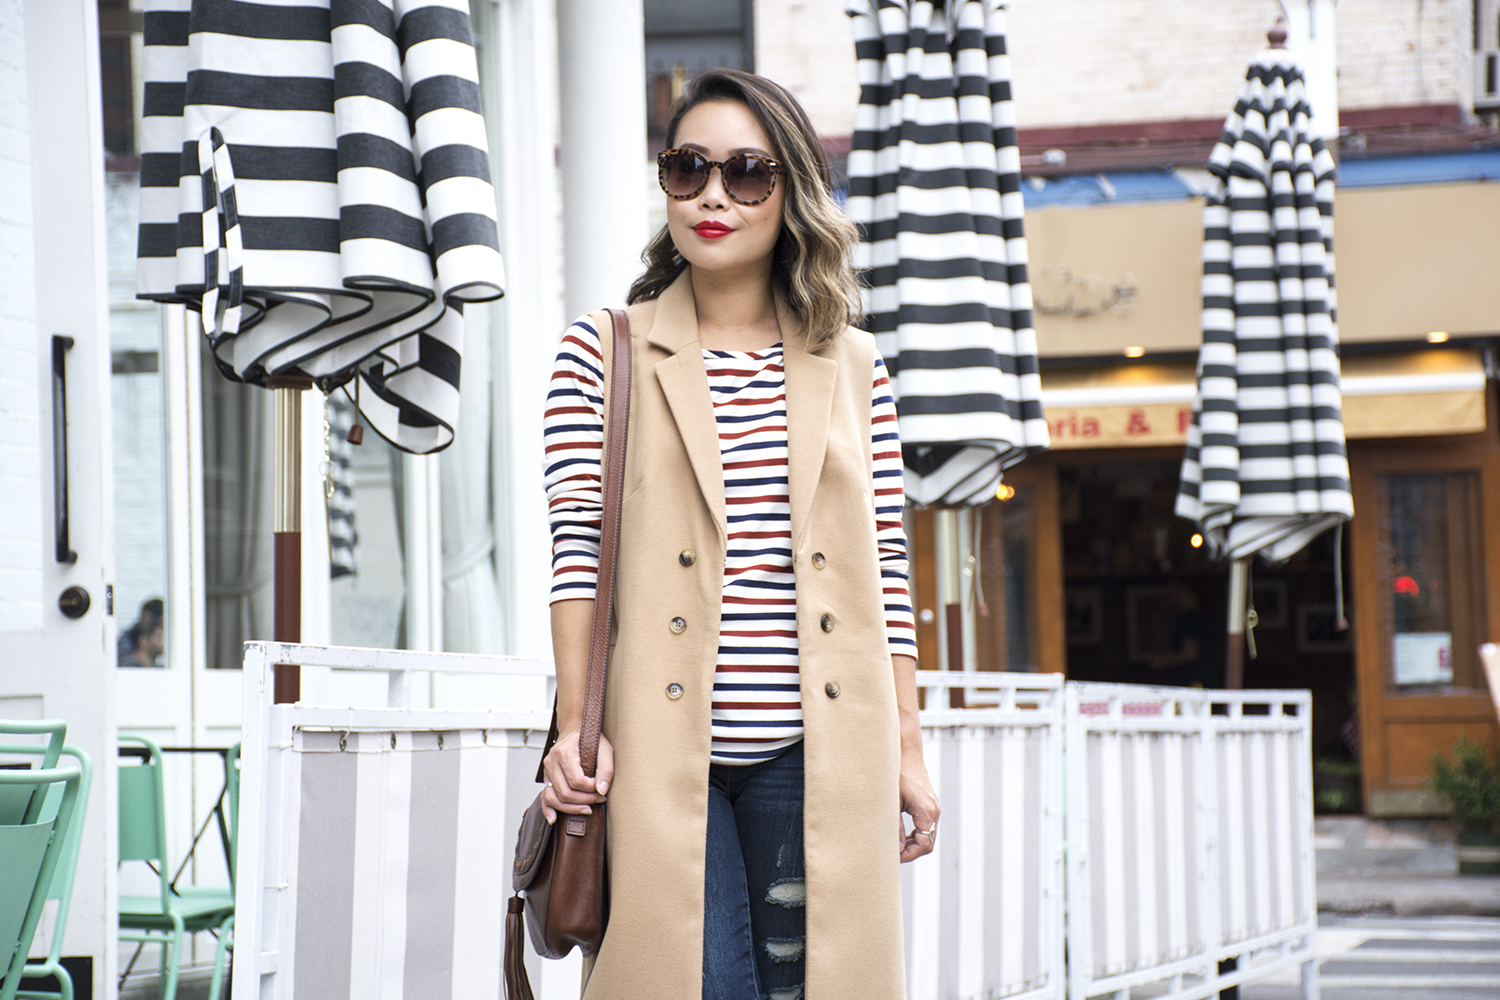 02nyc-newyork-city-stripes-travel-fashion-style